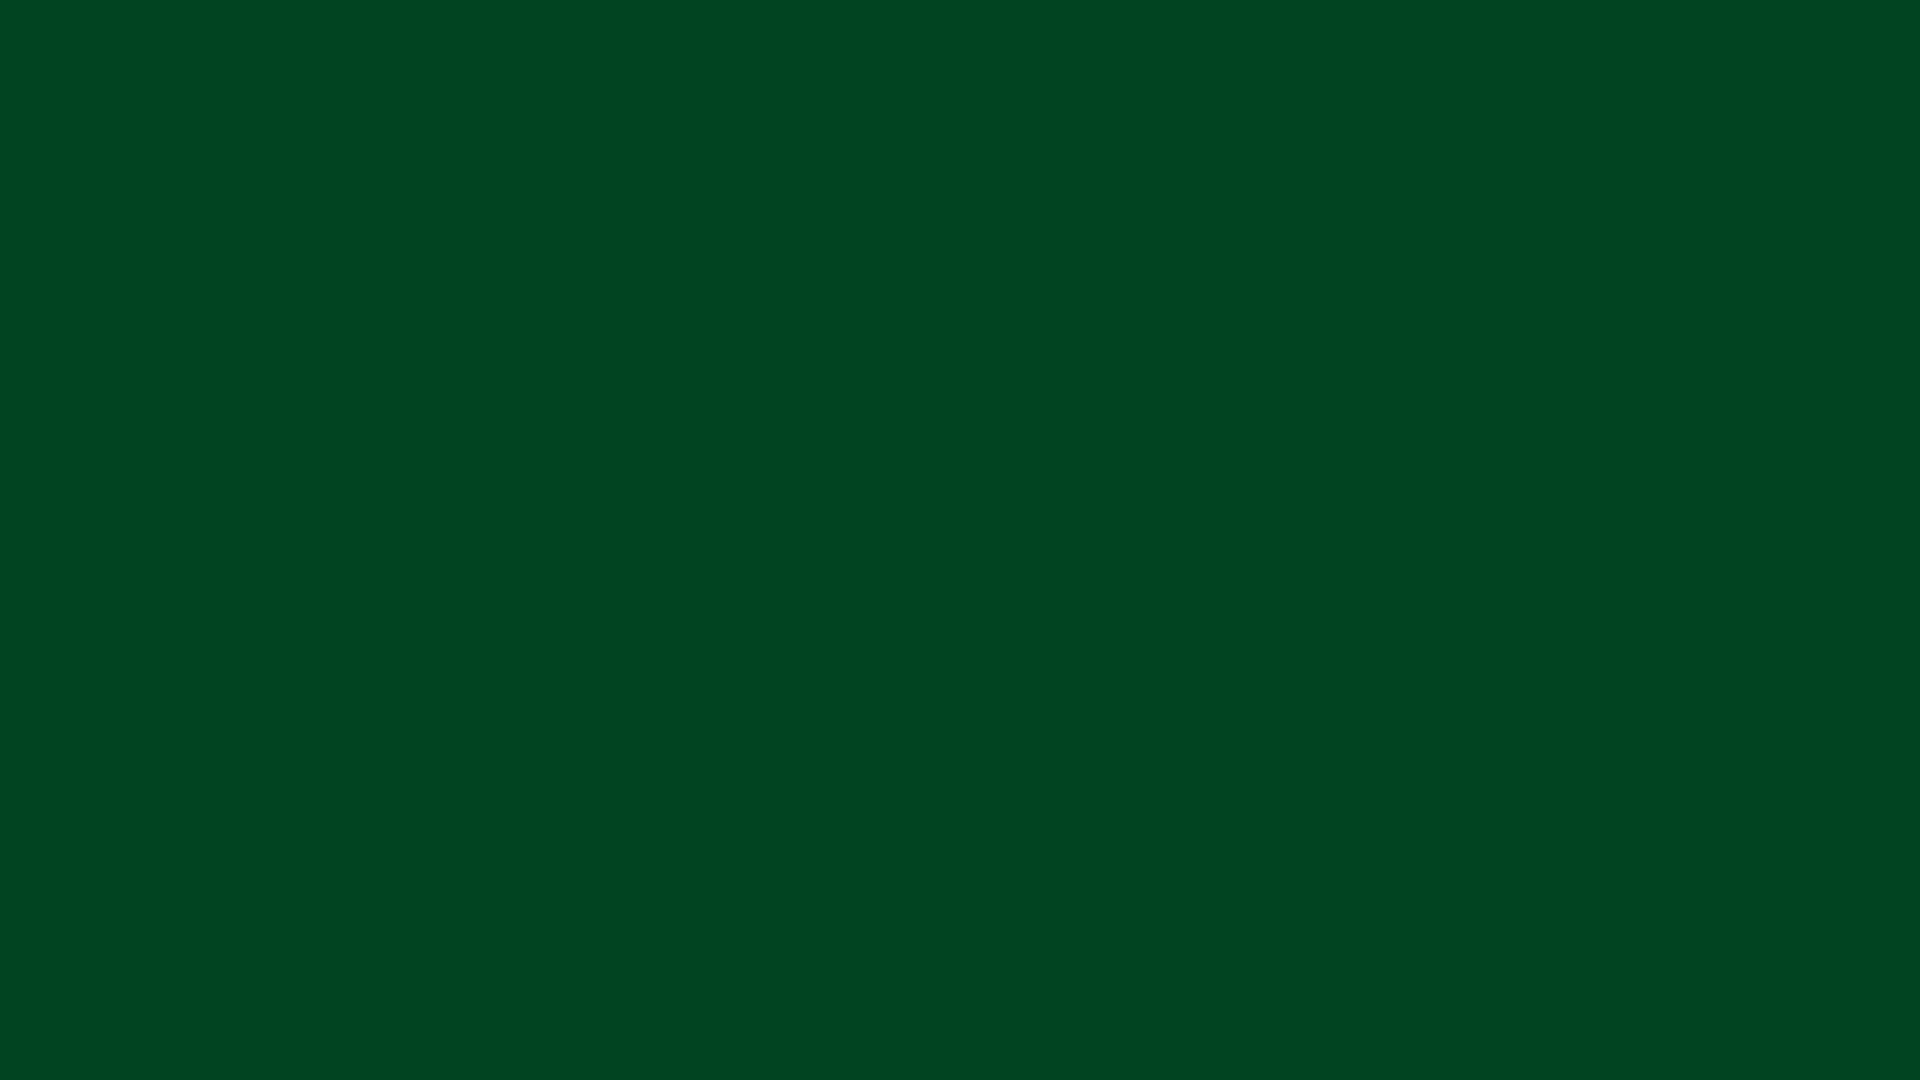 1920x1080 Forest Green Traditional Solid Color Background